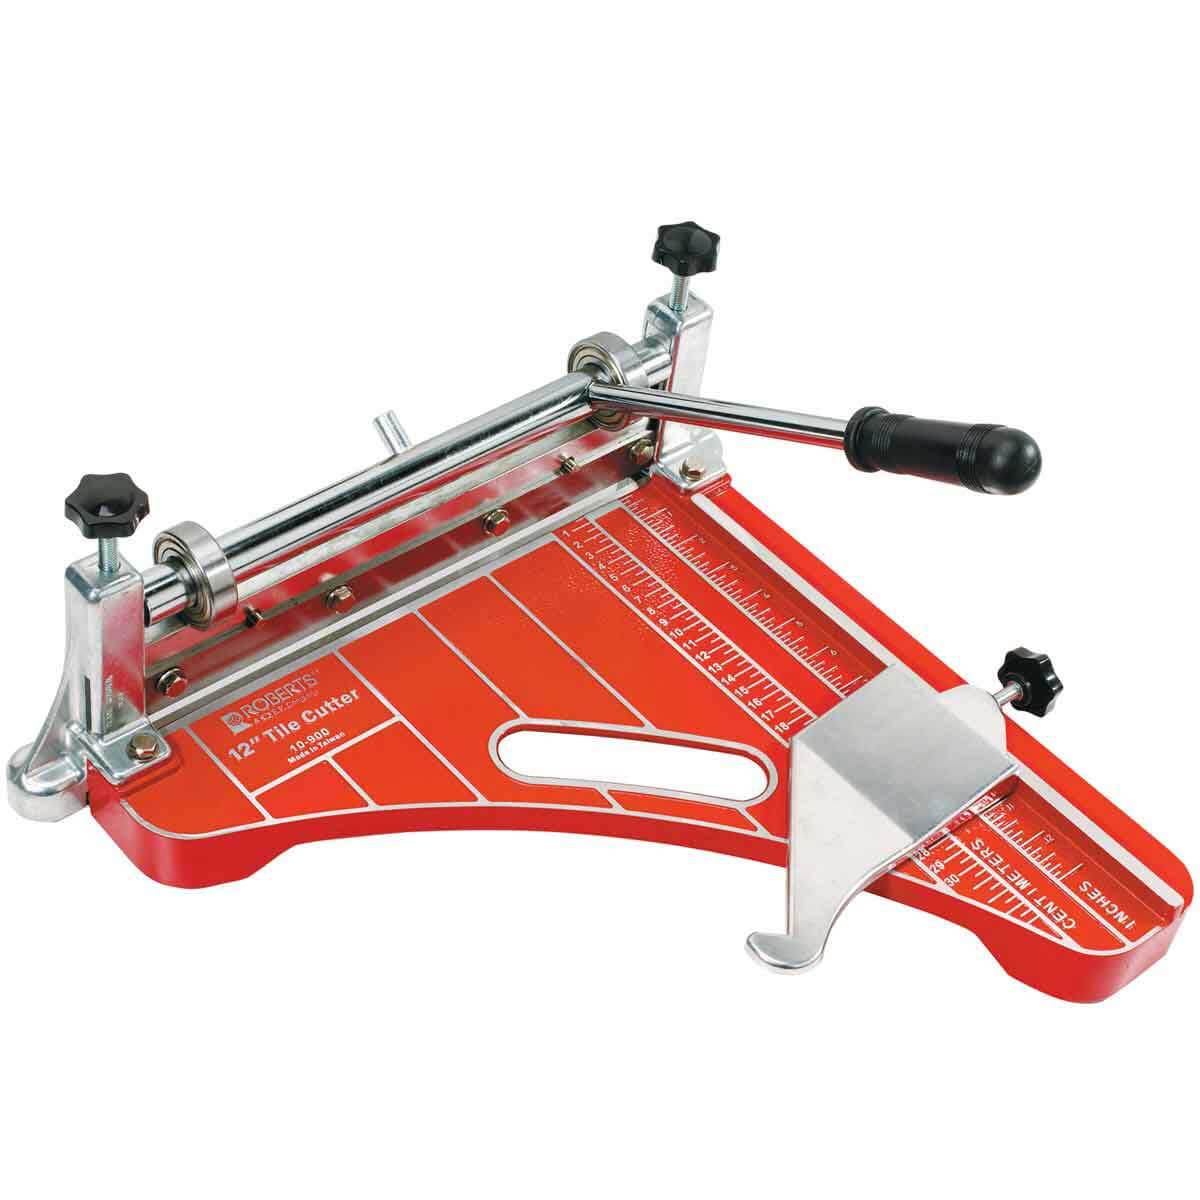 Roberts Vinyl Tile Cutters. Vtc Tools. Contractors Direct